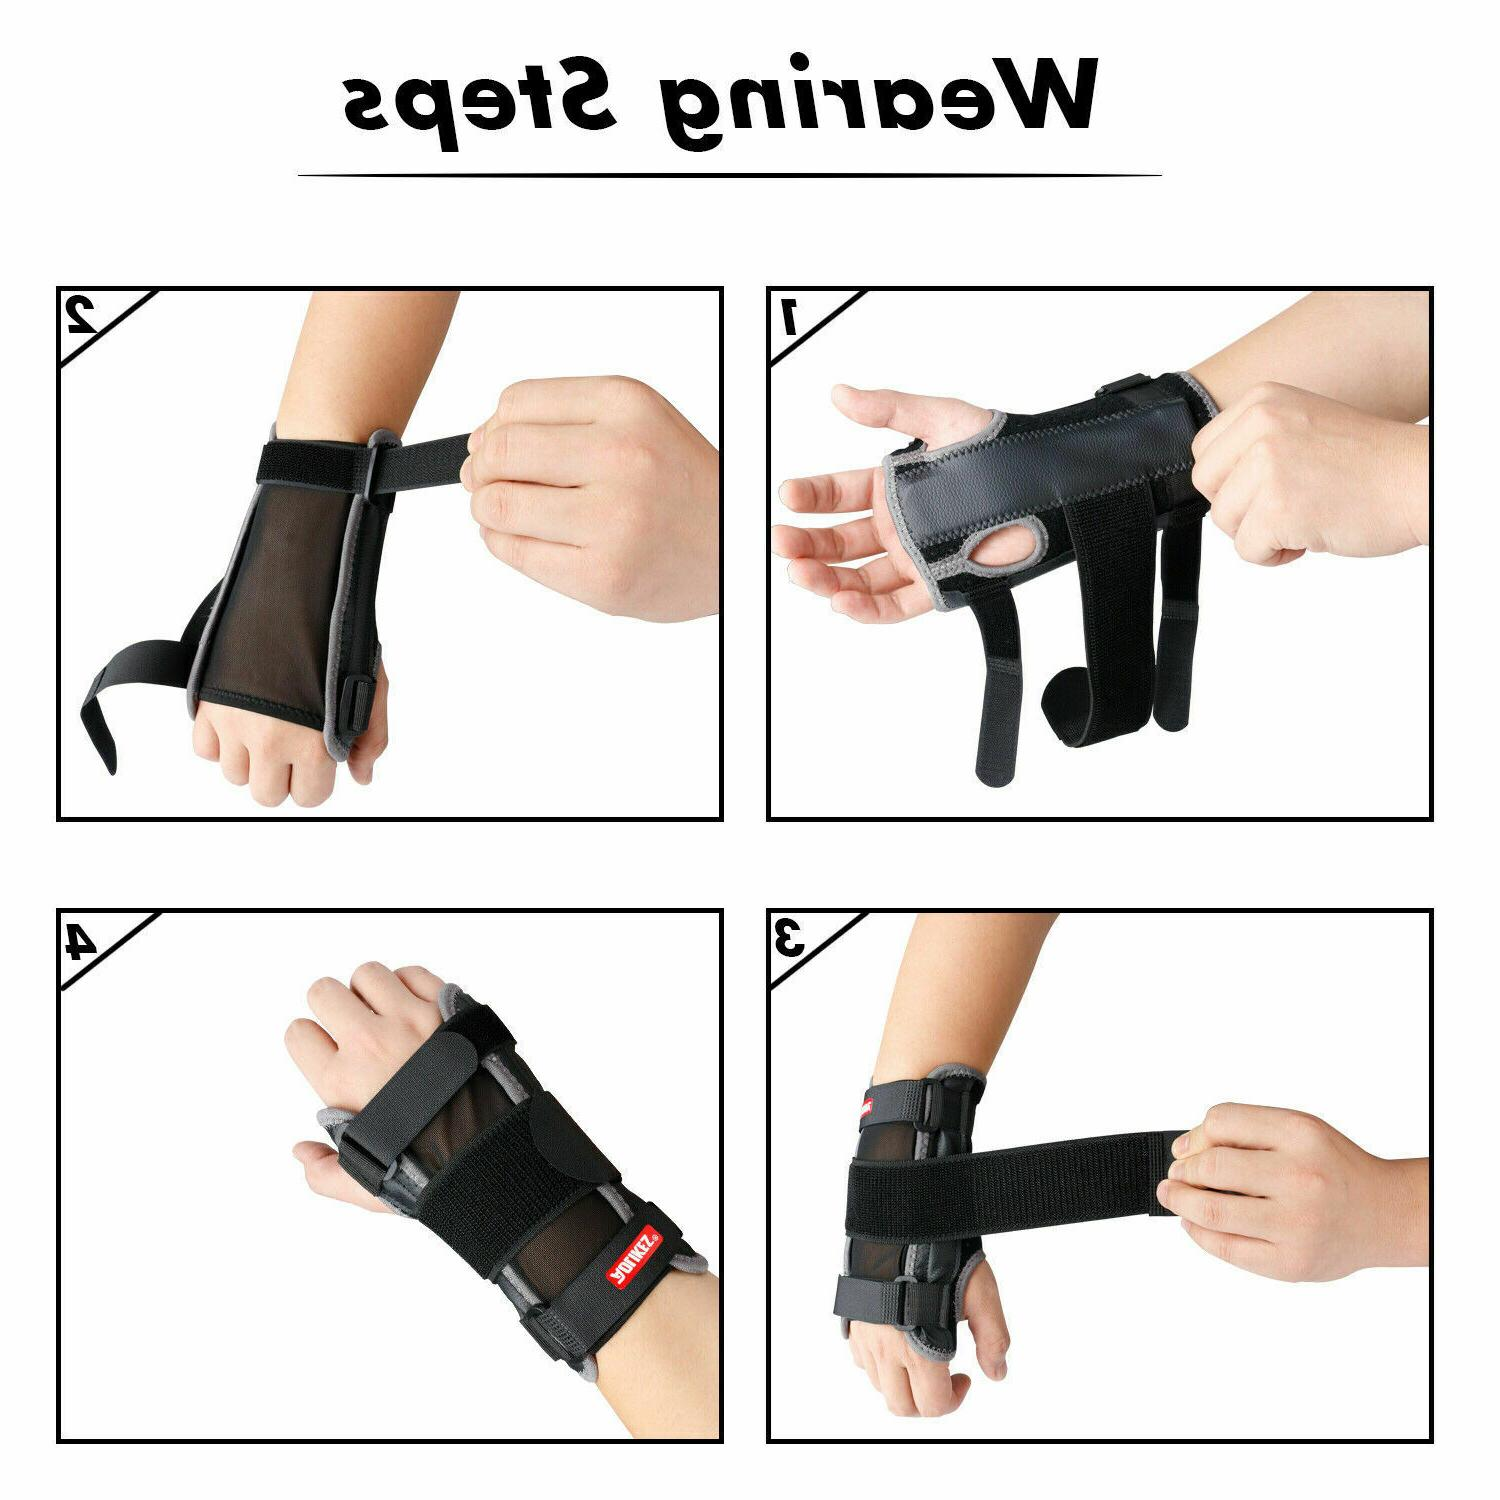 Right Brace Tunnel Sprain Arthritis